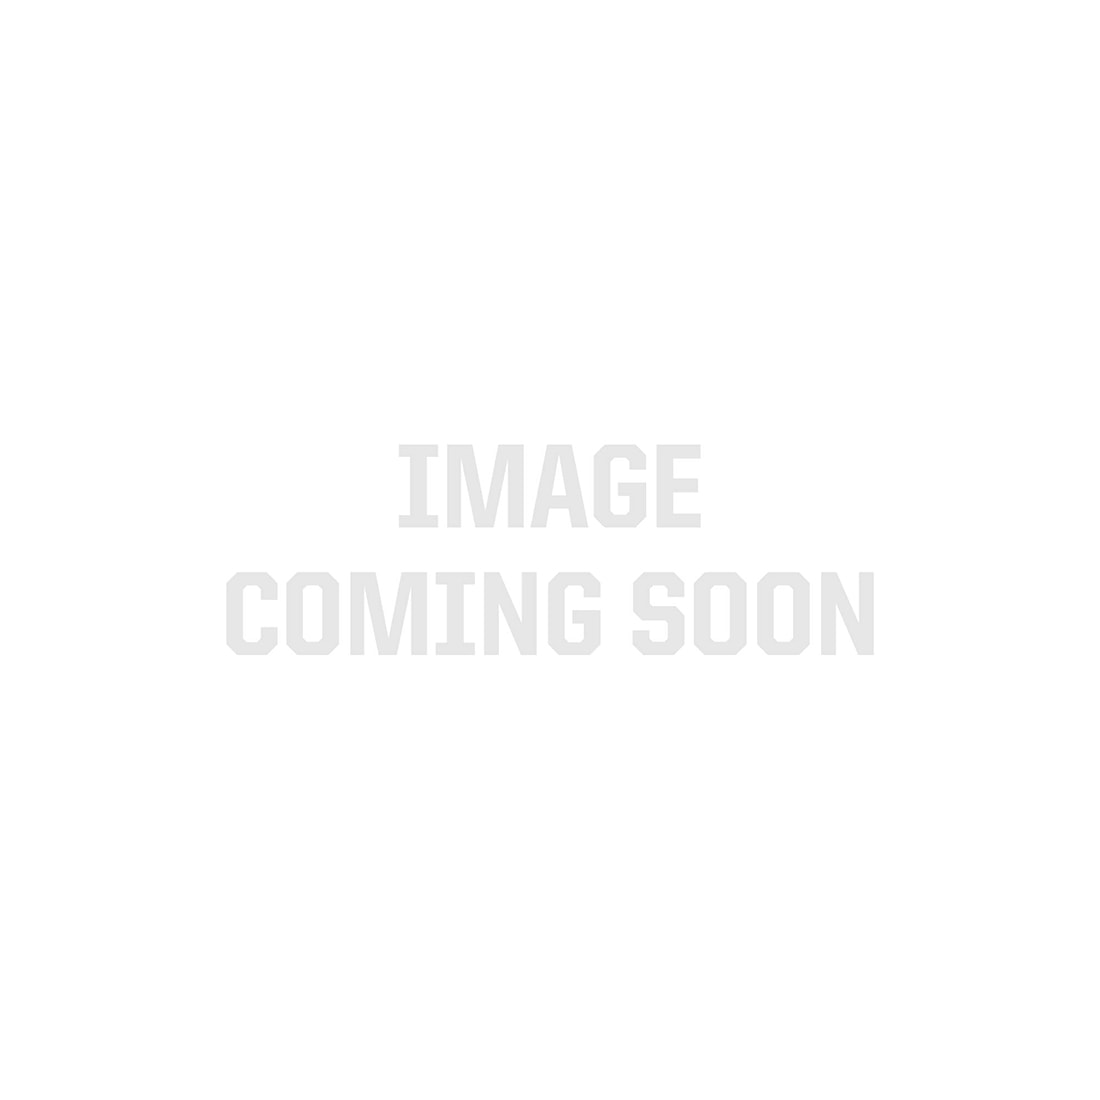 Lutron AYCL-253P Ariadni Dimmable CFL/LED Dimmer; 250 Watt, Single Pole or 3-Way (Multi-location)